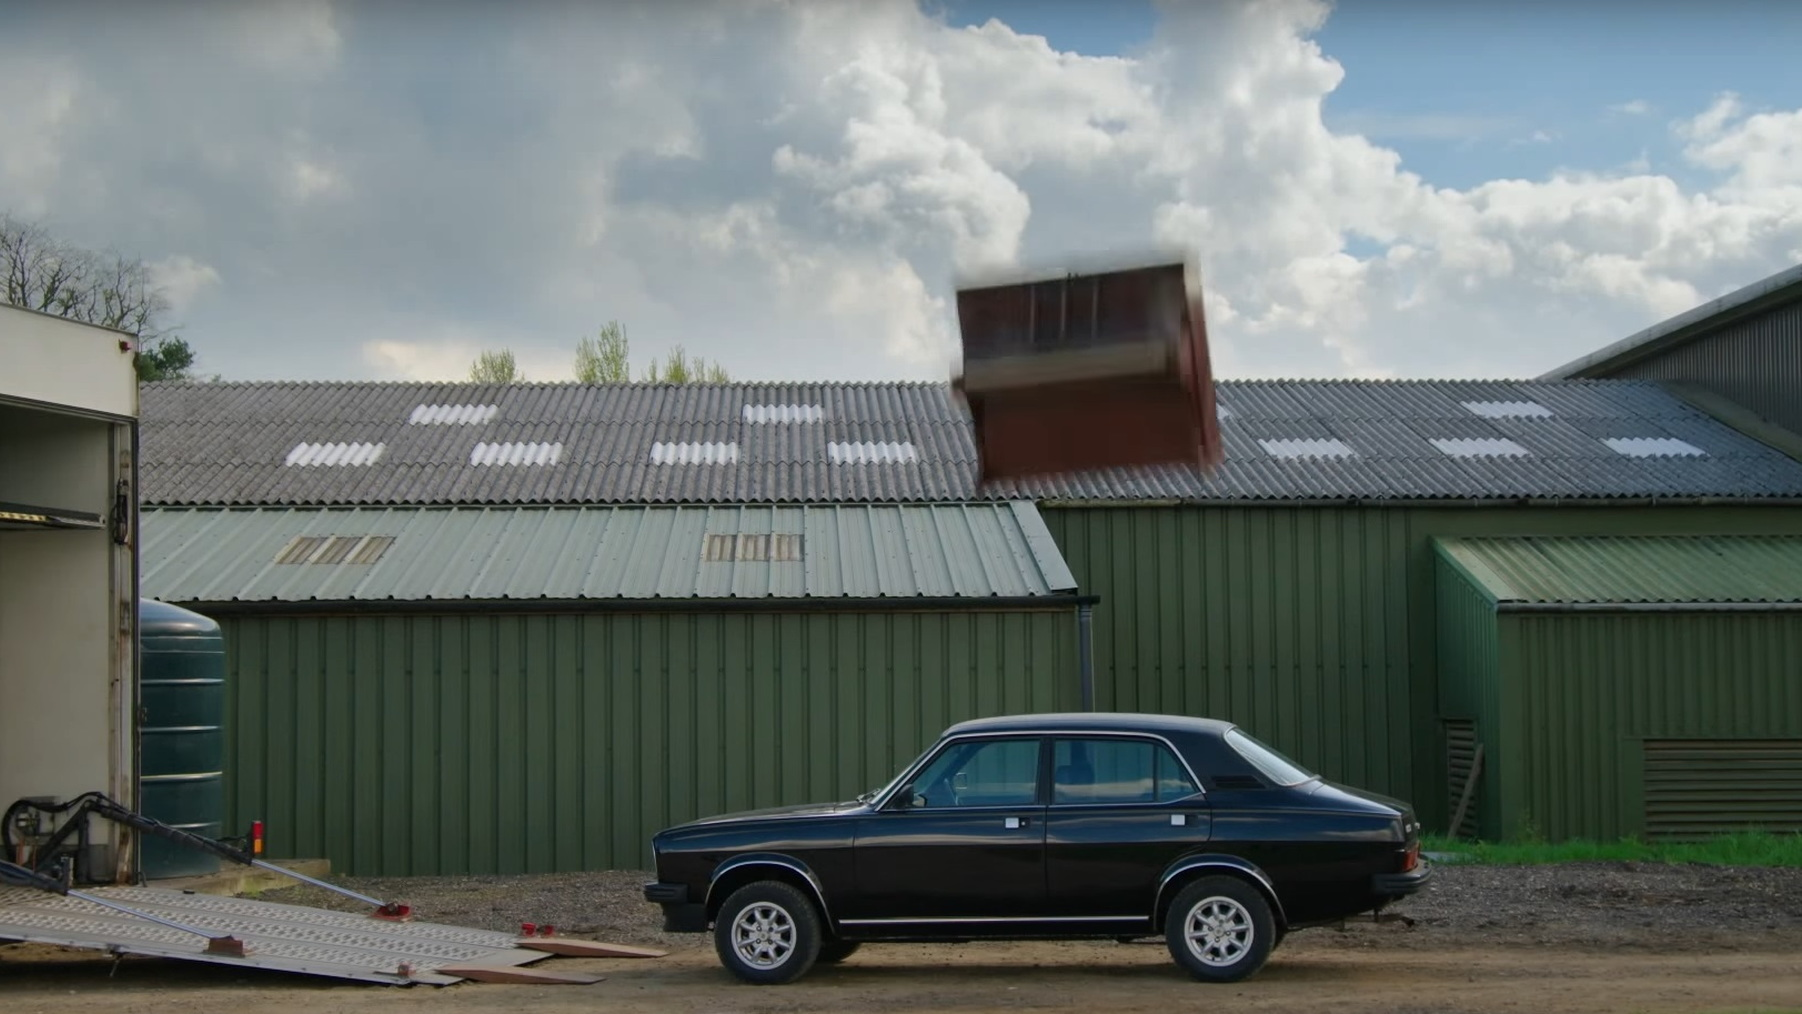 1980 Morris Marina 1700HL onto which Jeremy Clarkson dropped a piano from a crane